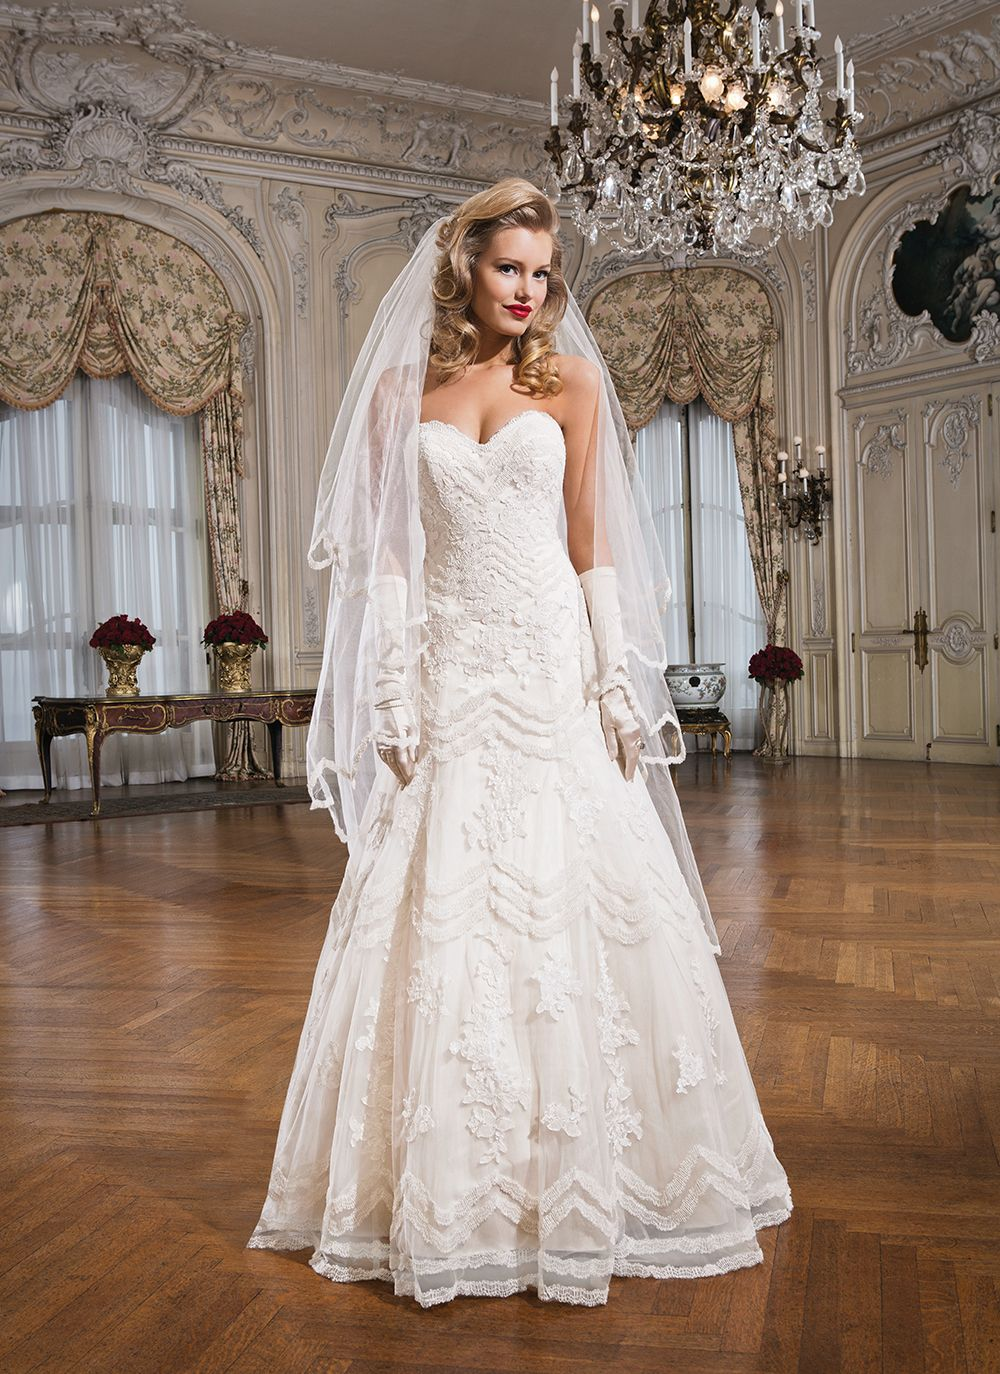 Justin Alexander Wedding Dresses Style 8759 Unique Soutache Lace A Line Dress Complemented With Sweetheart Neckline Veil Bride